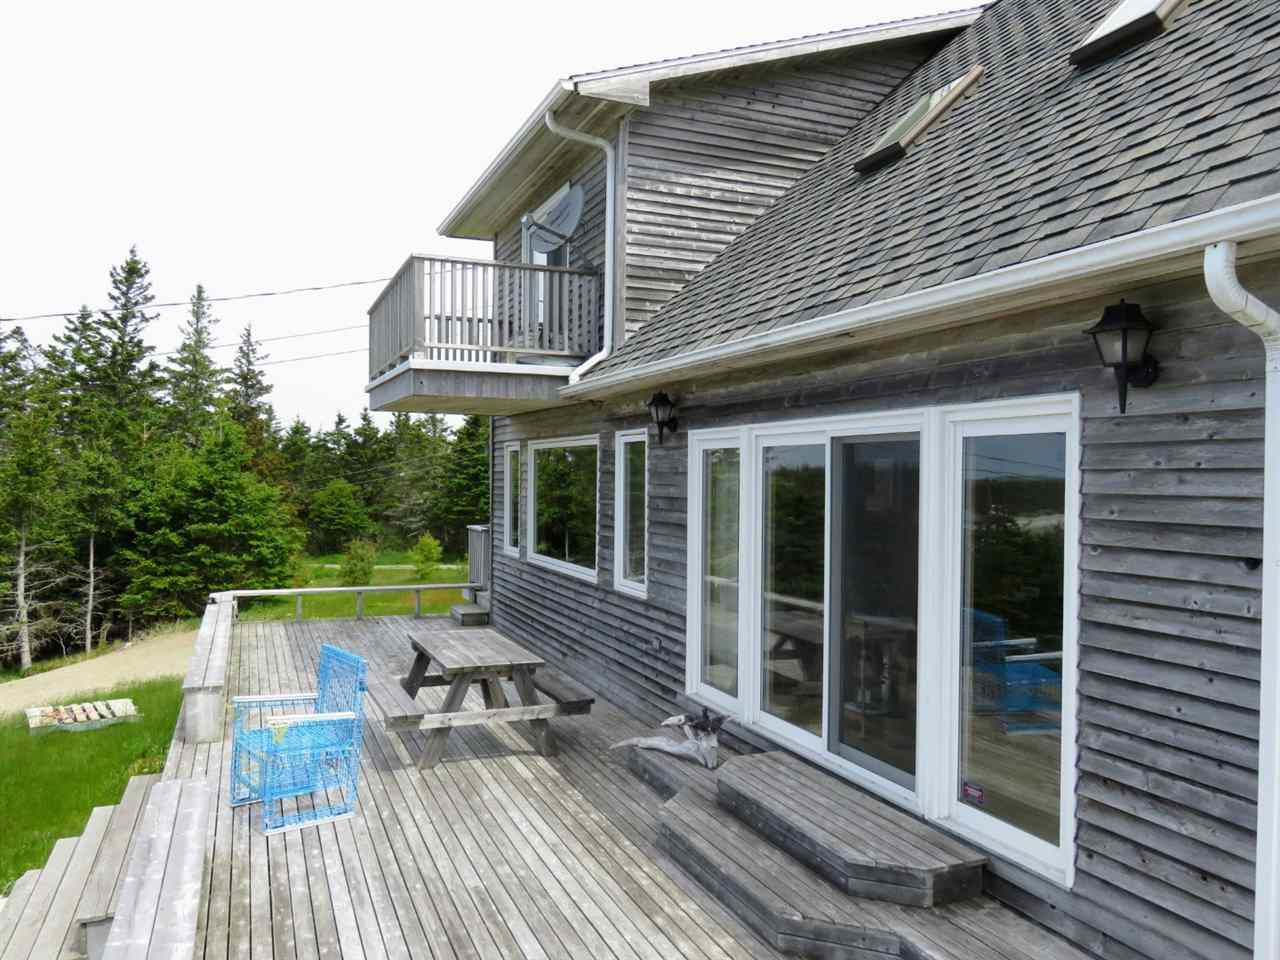 Main Photo: 21 SANDHILLS BEACH EXTENSION Road in Villagedale: 407-Shelburne County Residential for sale (South Shore)  : MLS®# 201914557